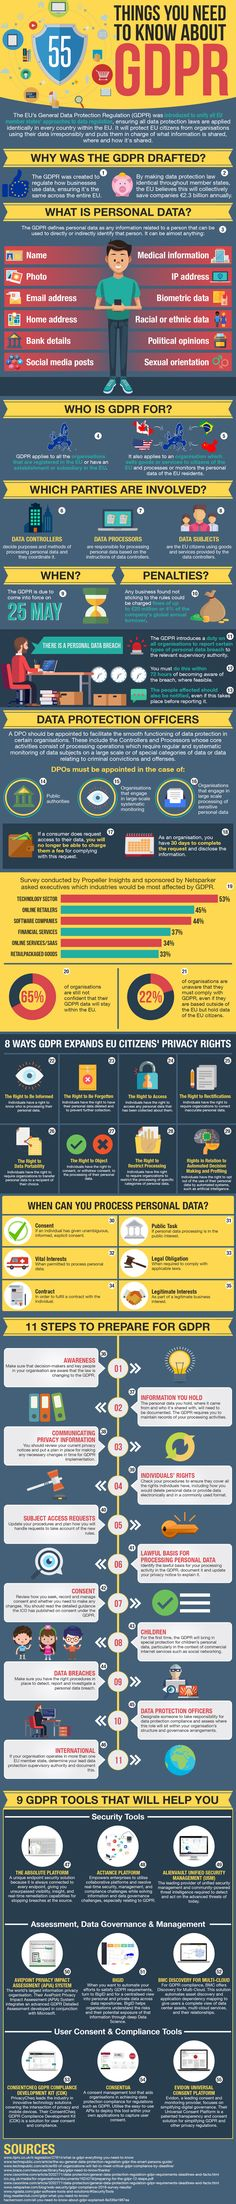 55 Things Business Owners & Marketers Need to Know About GDPR [Infographic]